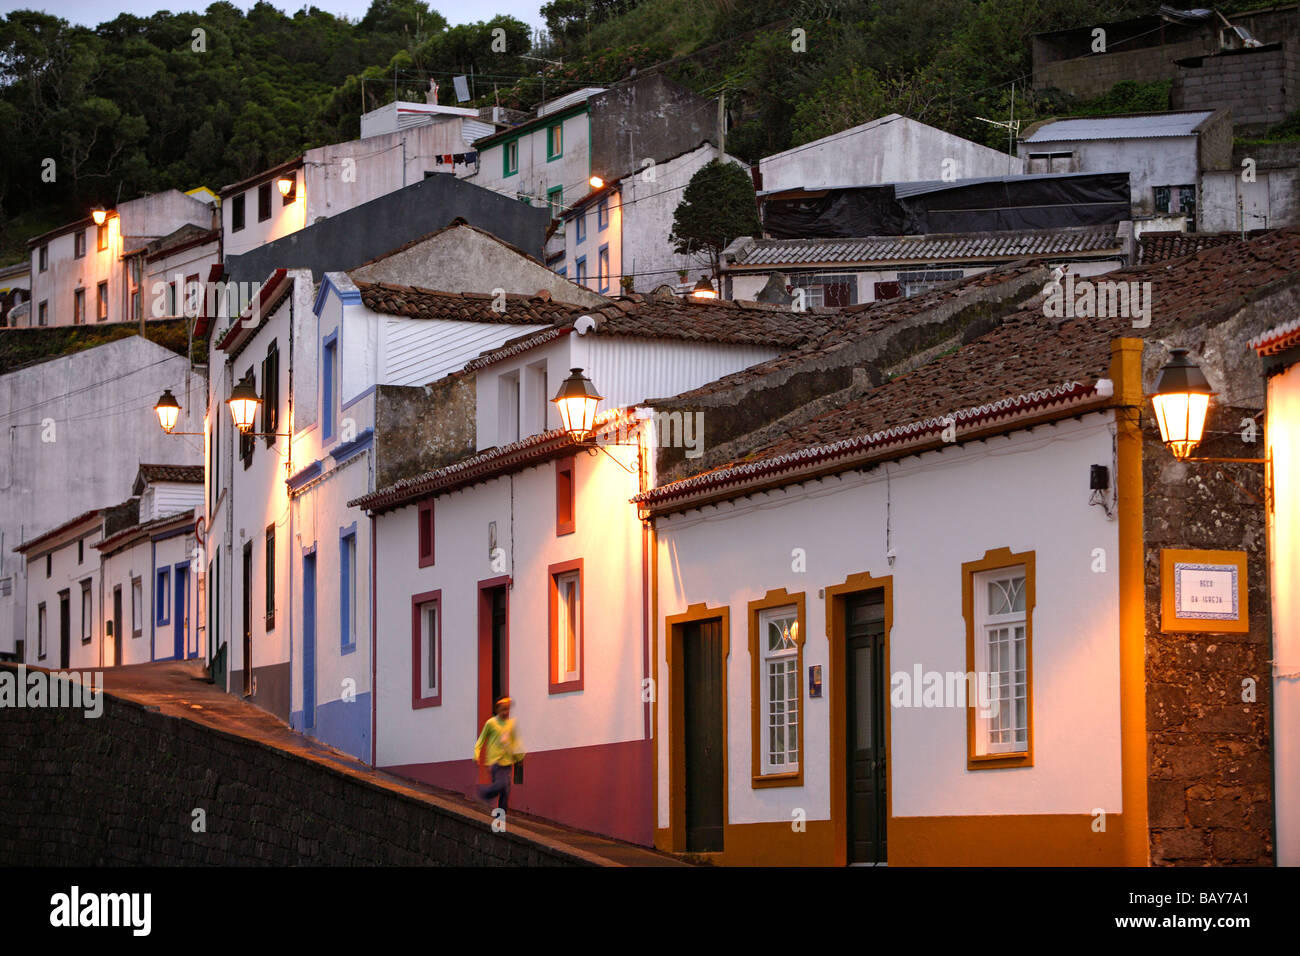 An evening in the streets of Agua de Pau, Azores, Portugal - Stock Image